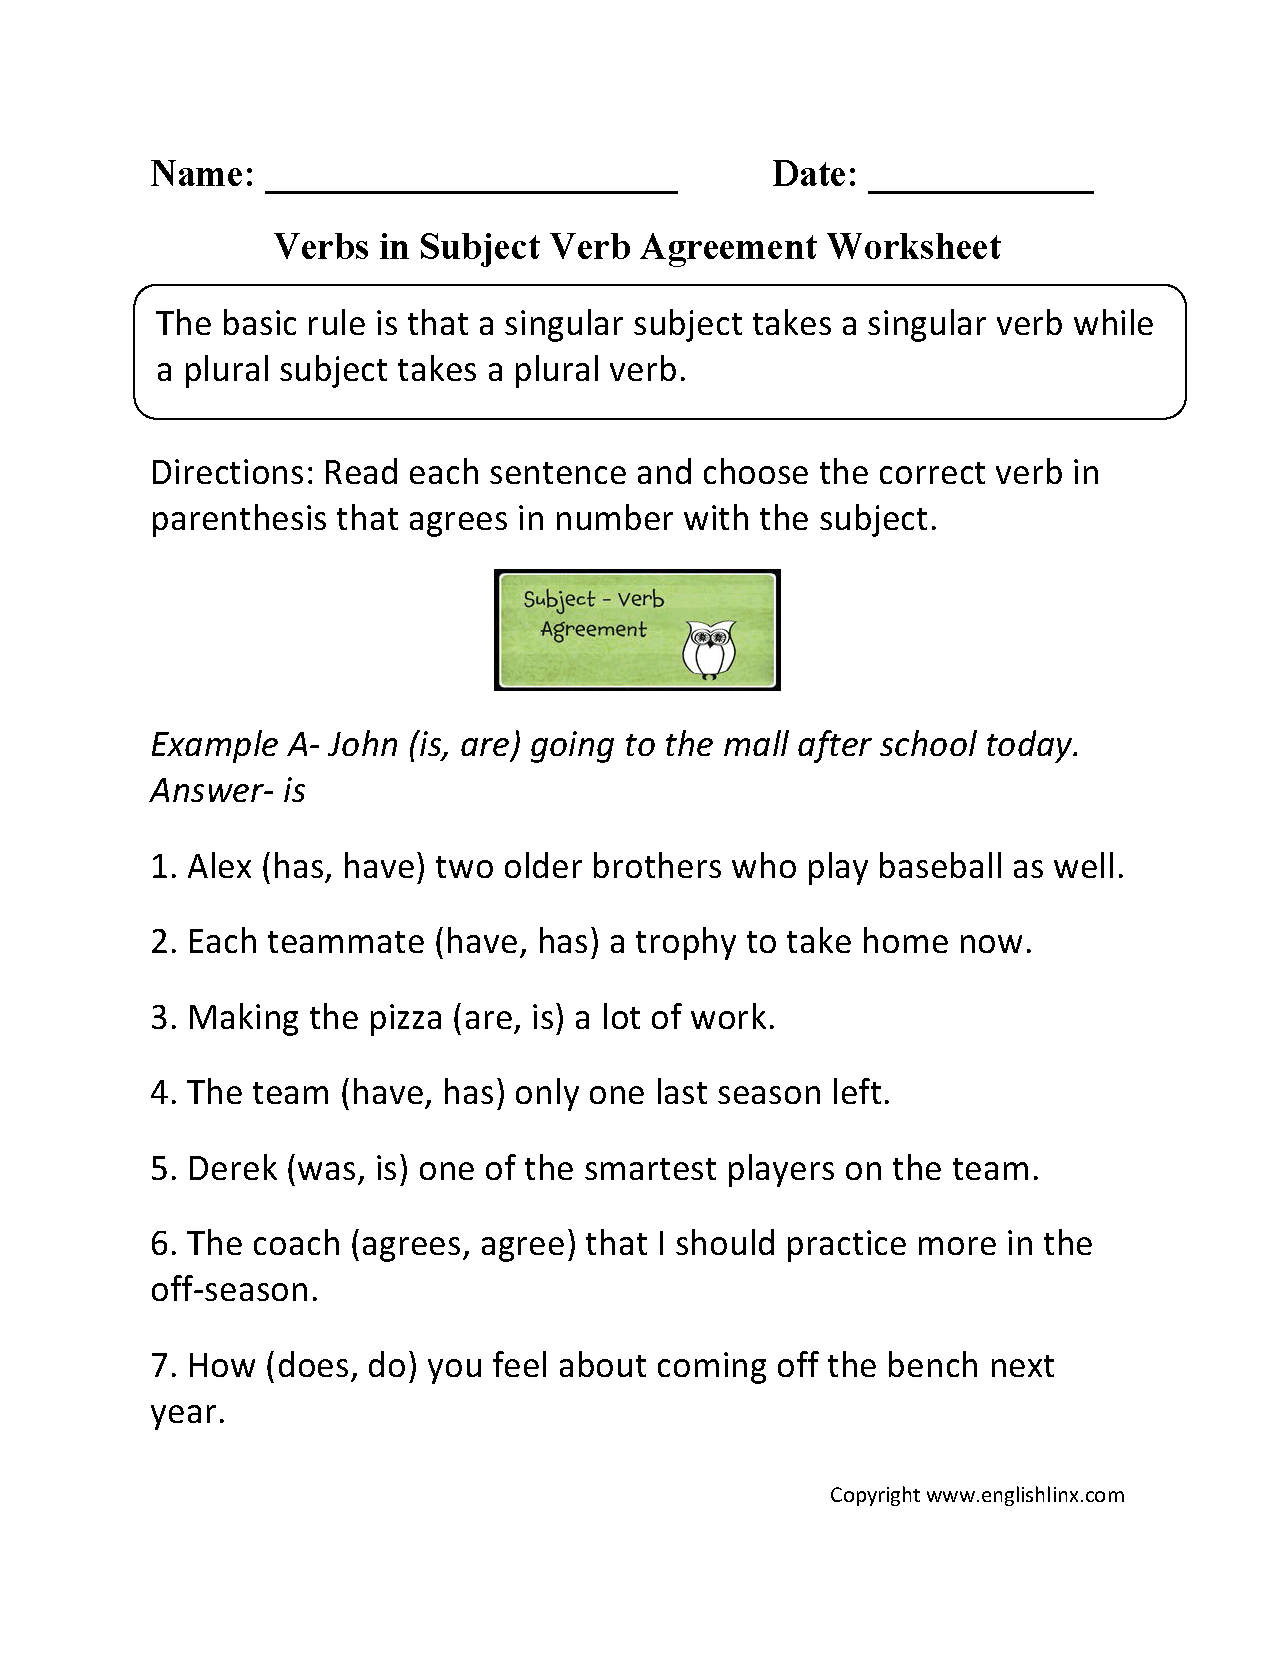 Verbs In Subject Verb Agreement Worksheet